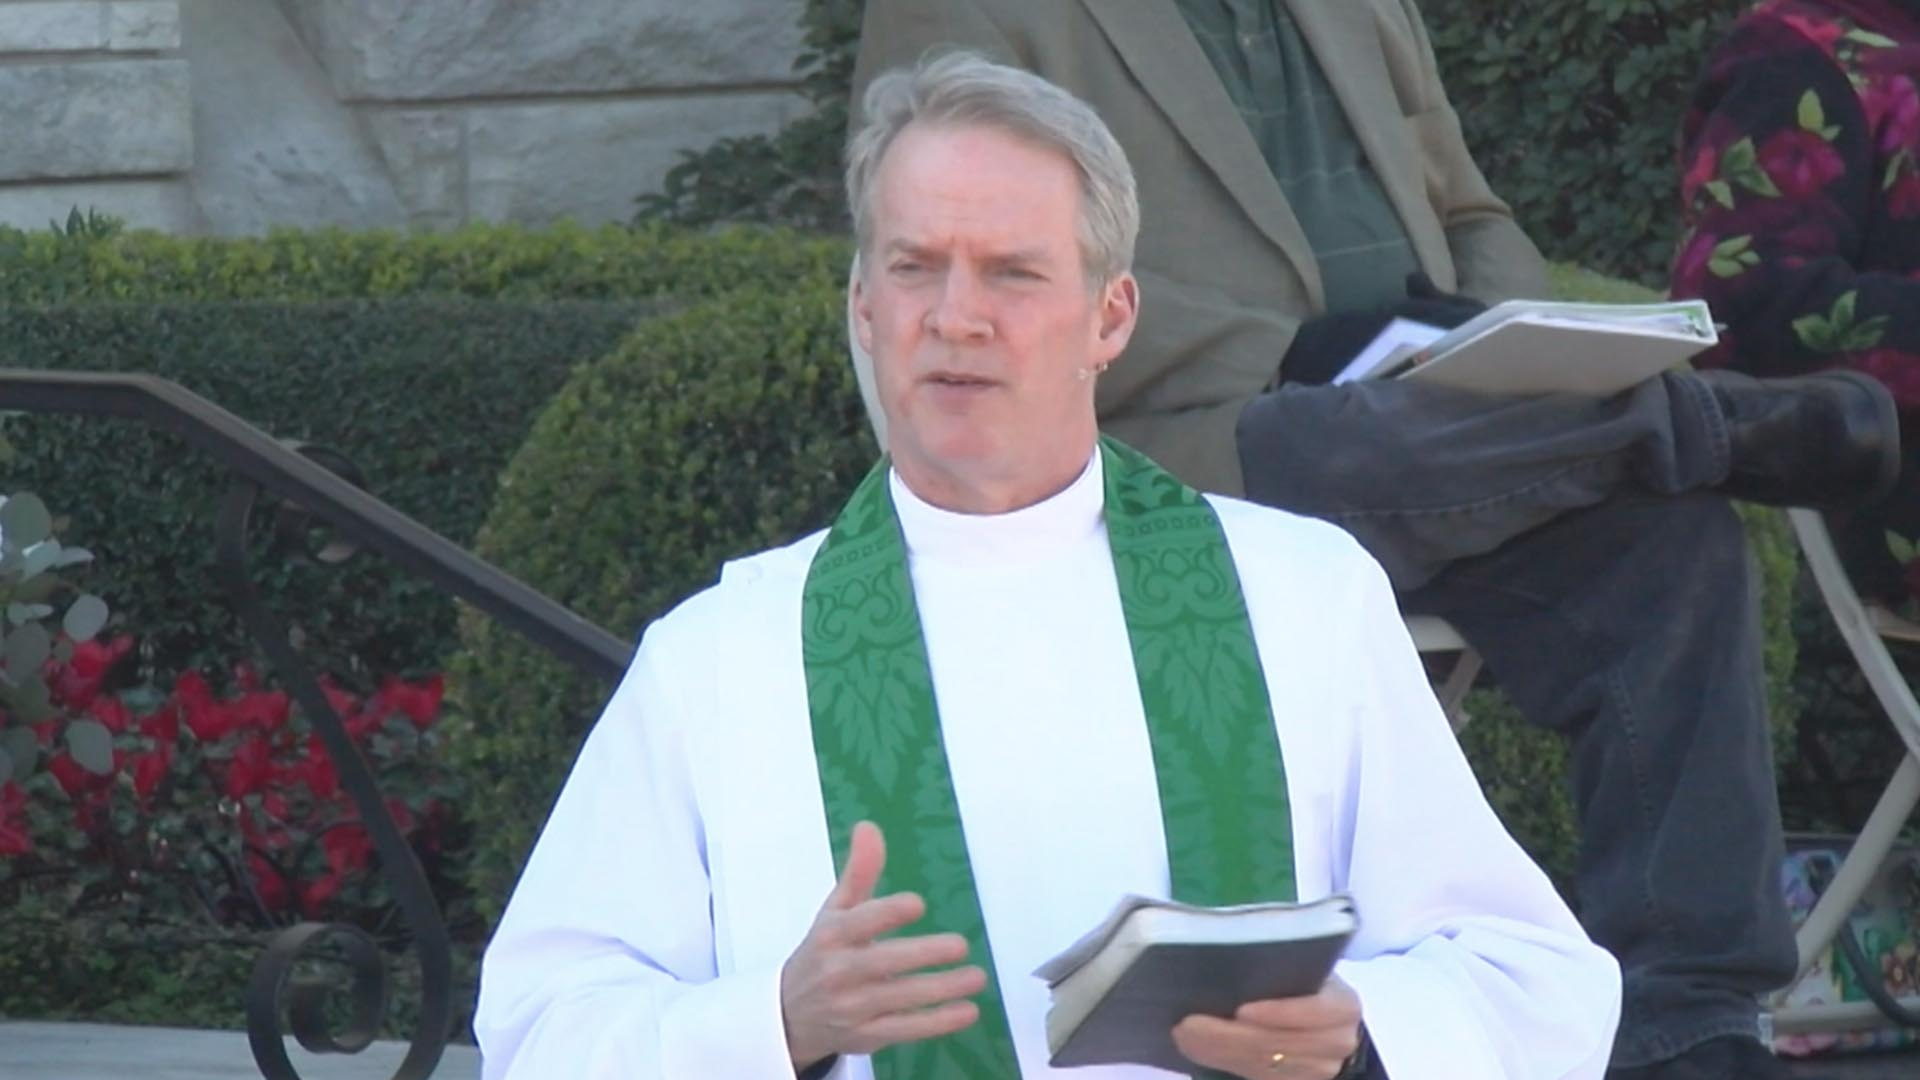 The Pattern of Jesus and Prayer in the Father - Sermon by the Rev. Dr. R. Leigh Spruill